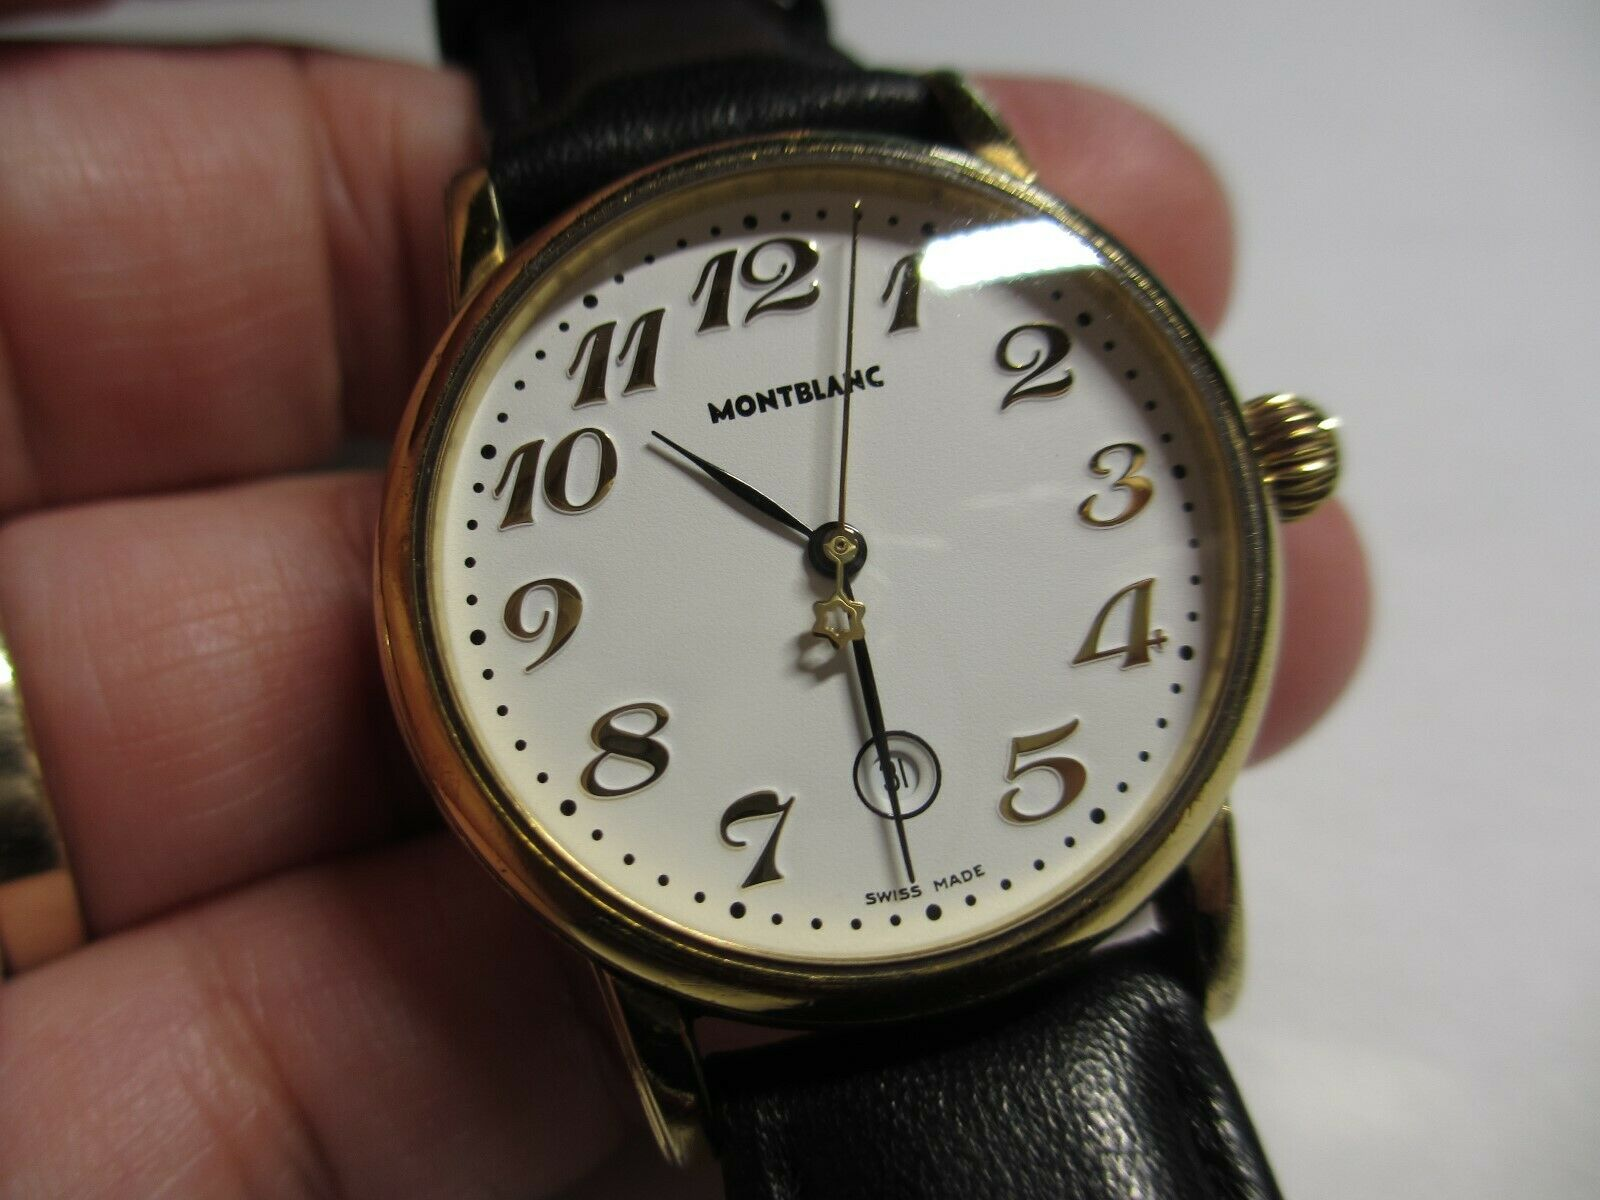 XFINE 32mm AUTH MONTBLANC MEISTERSTUCK 7005 STAINLESS STEEL GOLDTONE WRISTWATCH